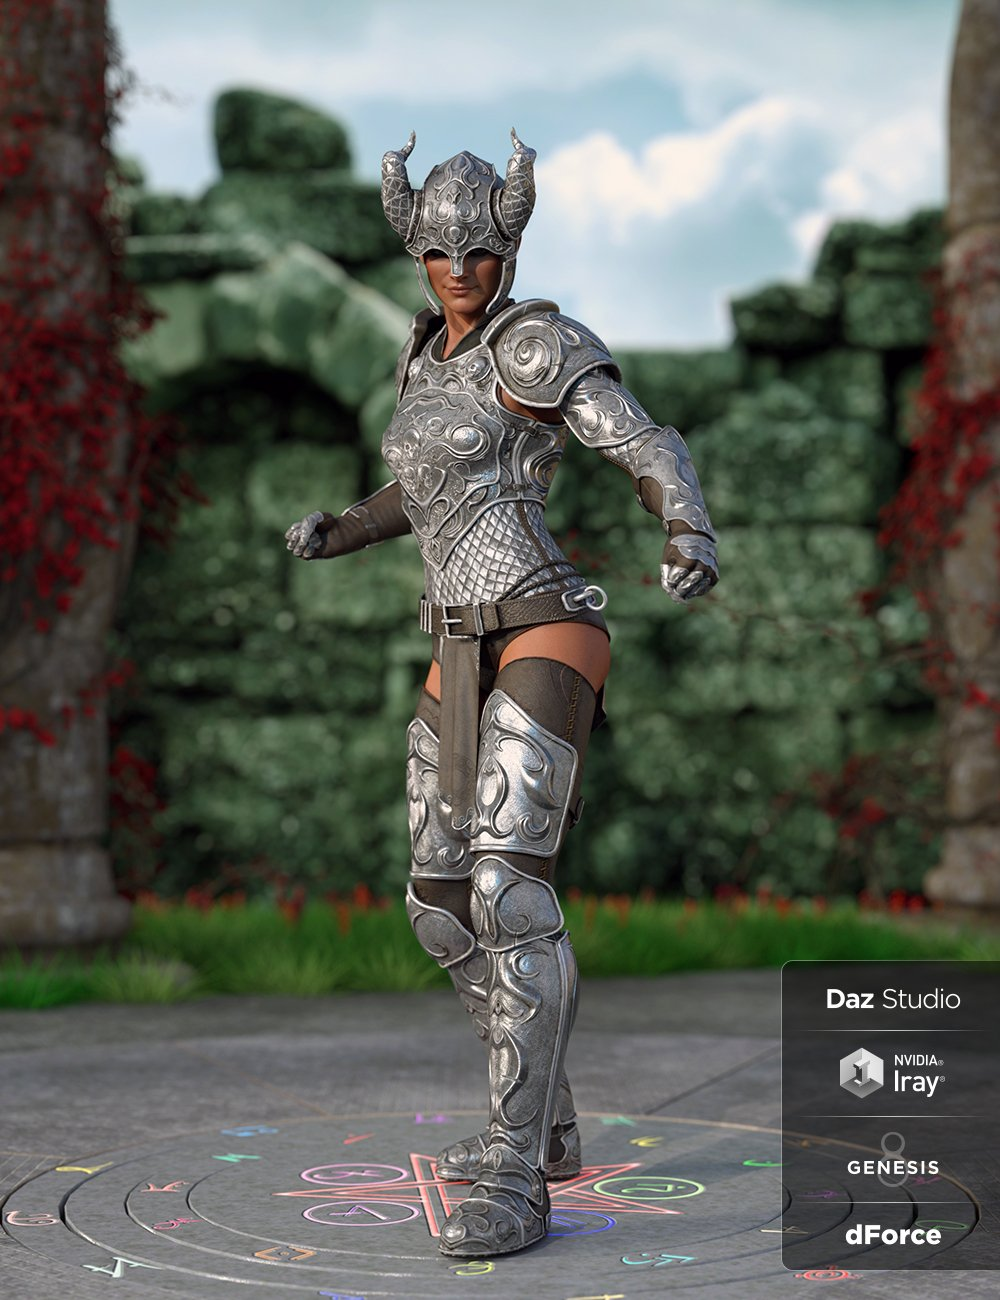 dForce Valiant Armor for Genesis 8 and 8.1 Females by: Cichy3D, 3D Models by Daz 3D